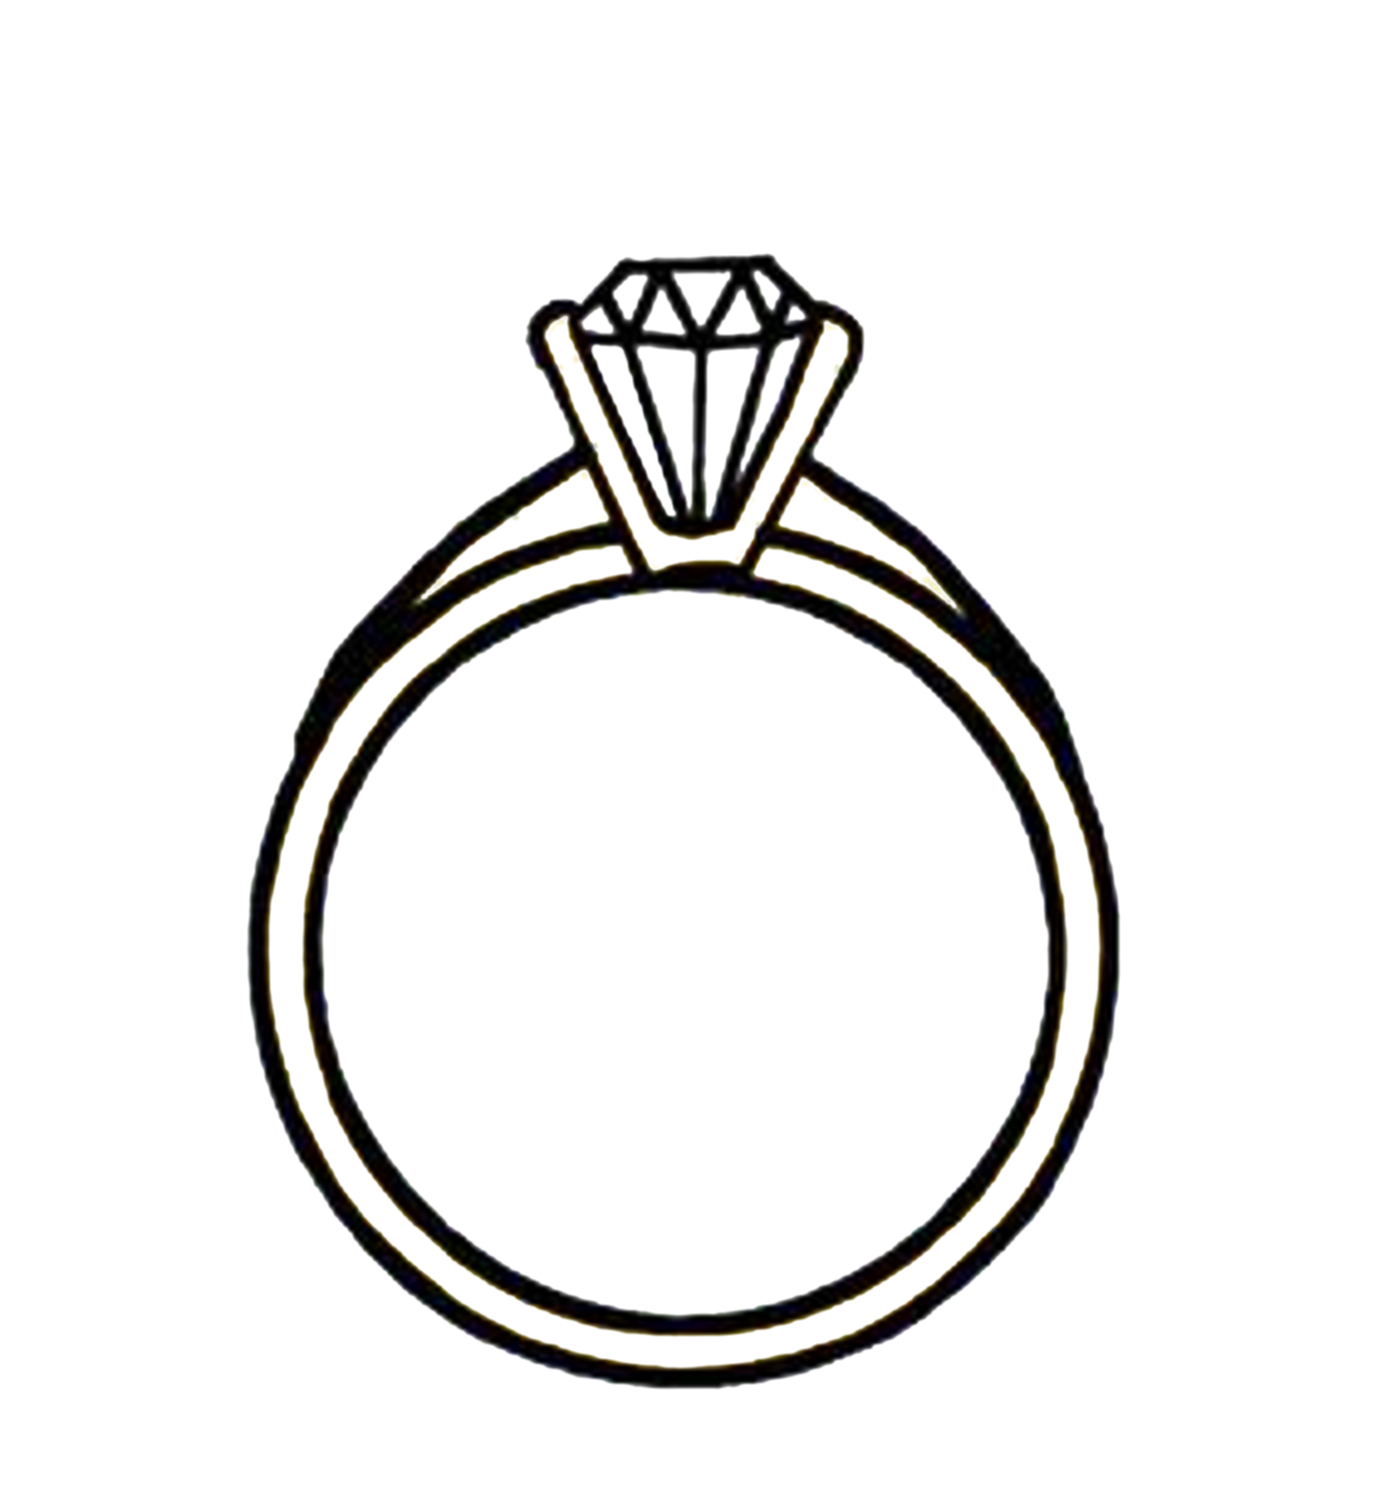 ring clipart black and white-ring clipart black and white-11